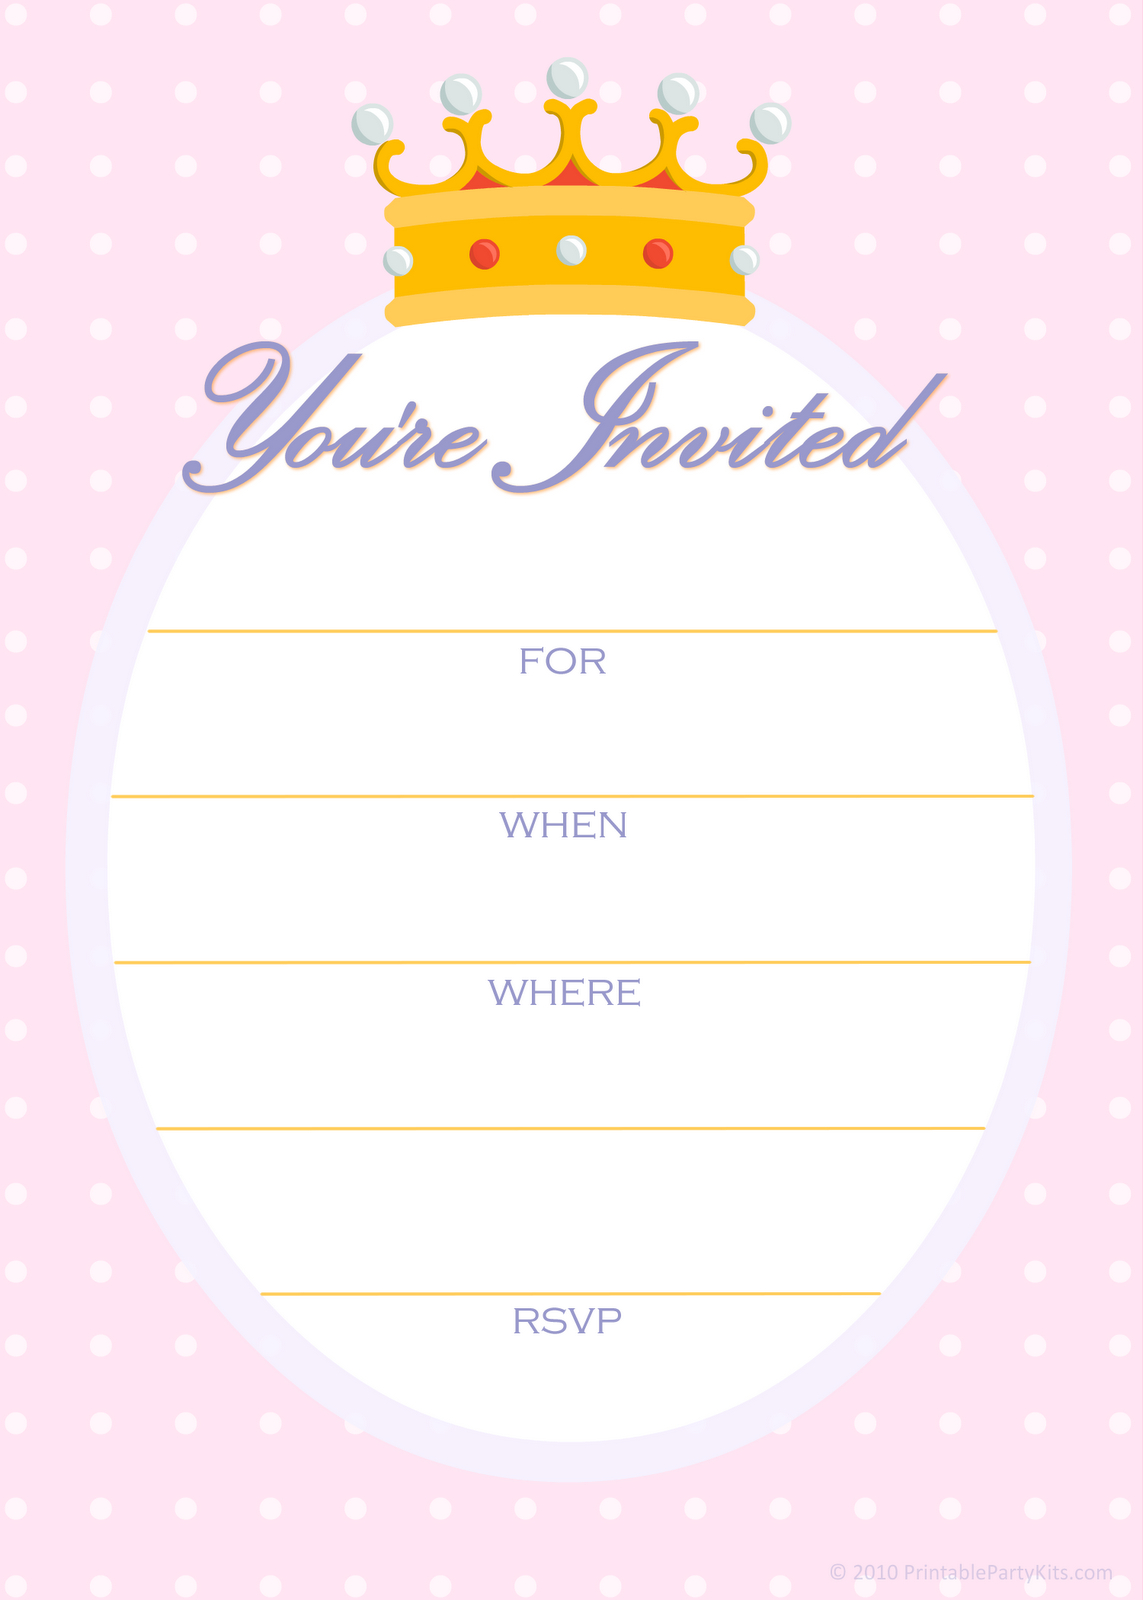 Free Printable Party Invitations: Free Invitations For A Princess - Free Printable Princess Invitations